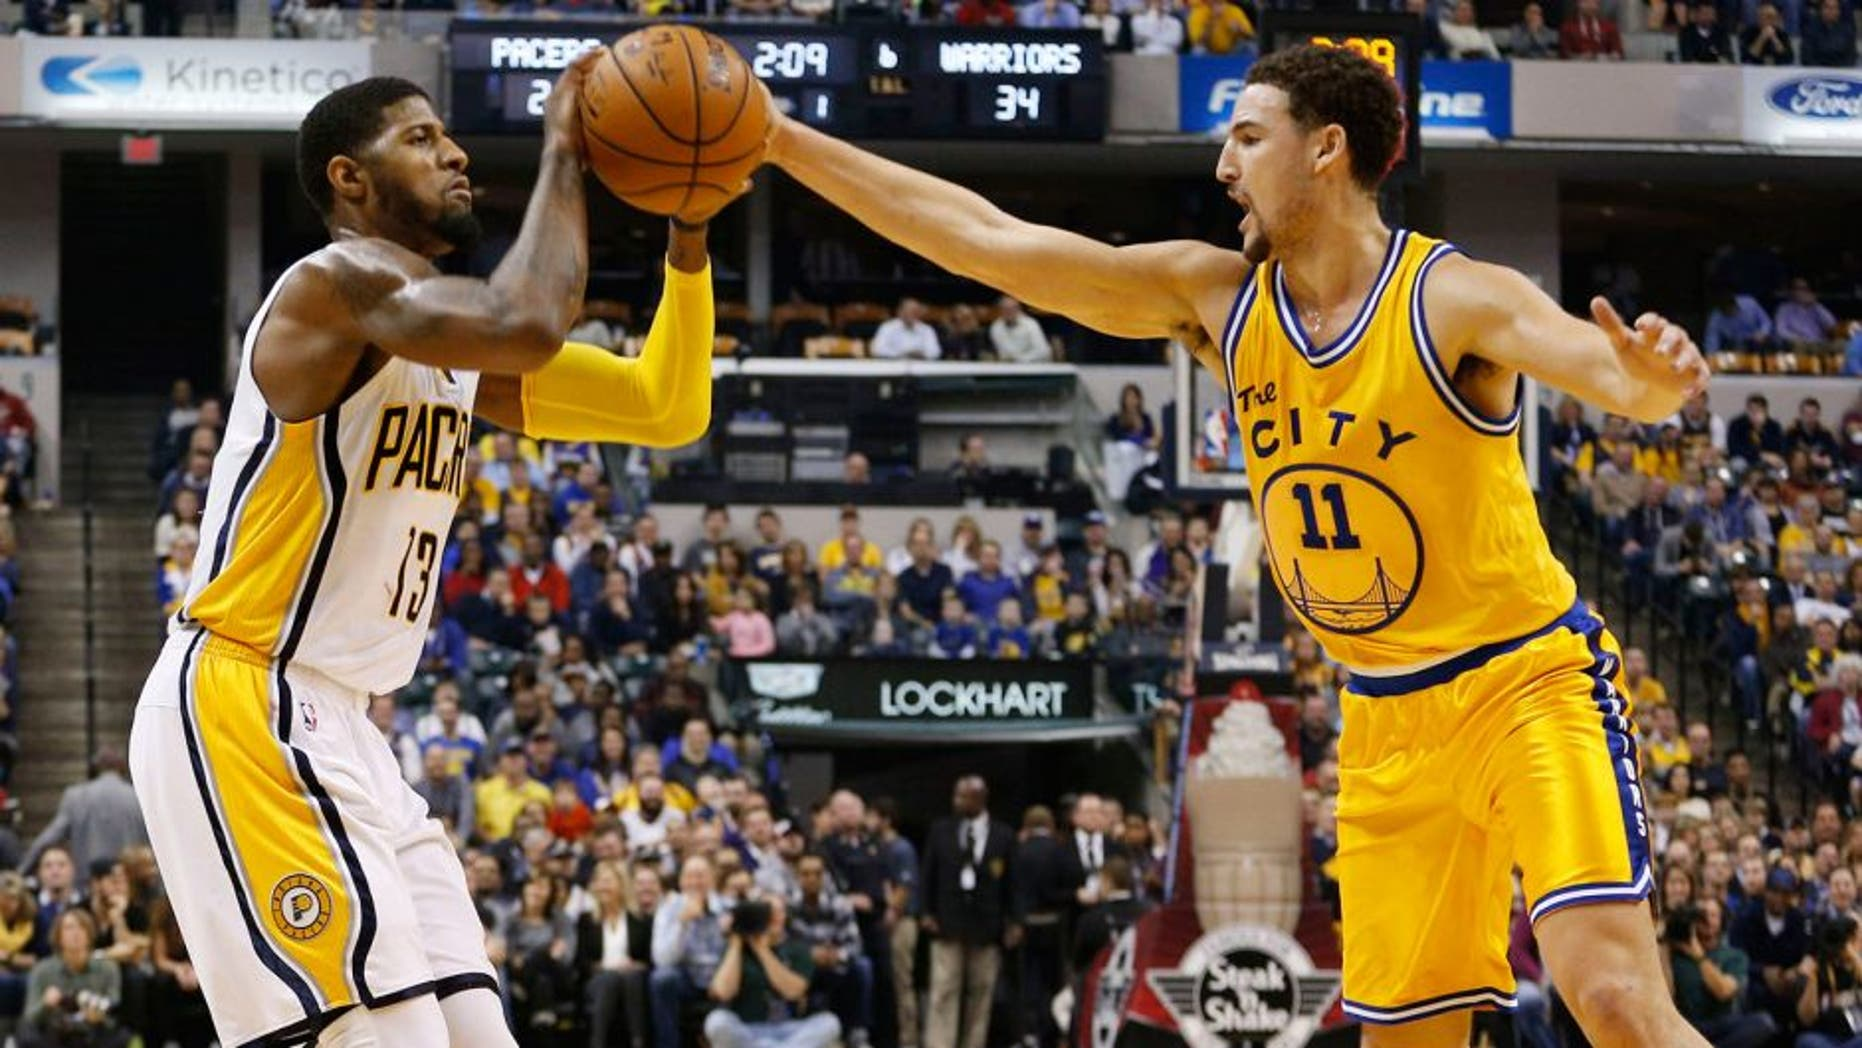 Dec 8, 2015; Indianapolis, IN, USA; Indiana Pacers forward Paul George (13) is guarded by Golden State Warriors guard Klay Thompson (1) at Bankers Life Fieldhouse. Mandatory Credit: Brian Spurlock-USA TODAY Sports